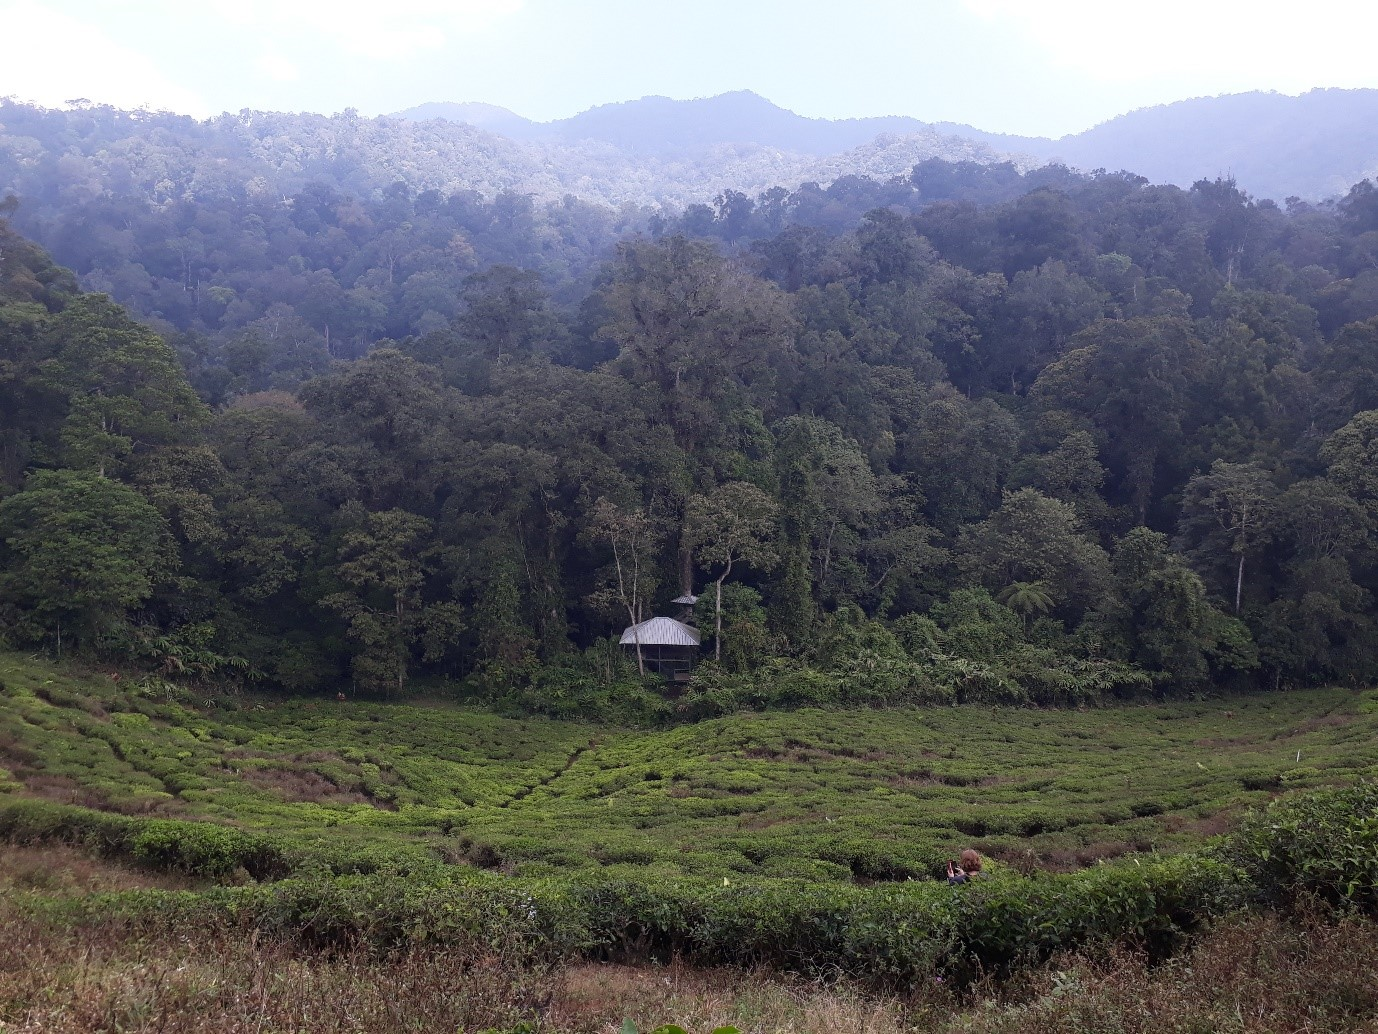 The edge of the rainforest bordered by a tea plantation, within Mount Halimun Salak National Park, West Java, Indonesia.